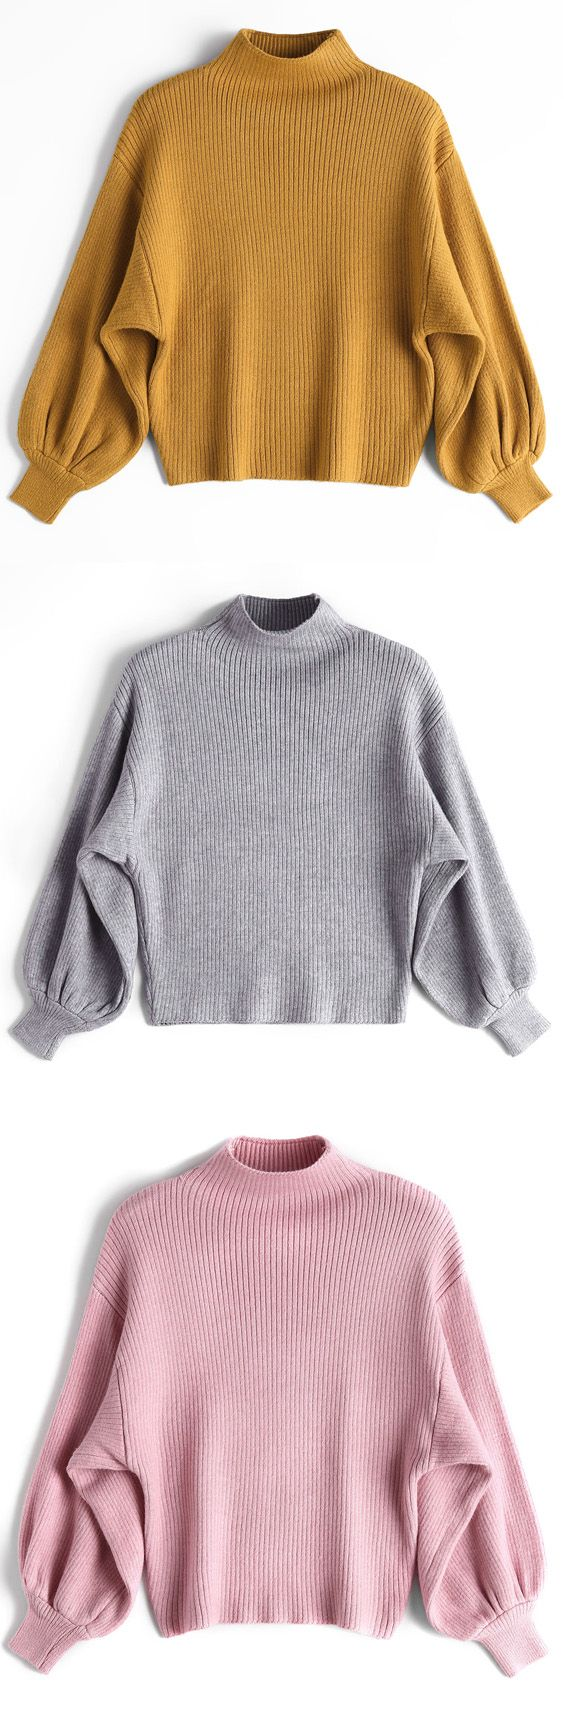 Up to 70% OFF! Lantern Sleeve Mock Neck Sweater. Zaful,zaful.com sweater dress, sweaters&cardigans, sweater,cardigans,choker sweater,chokers,chunky sweater,chunky,cardigans for women, knit, knitted, knitting, knitwear, cardigan, cardigan outfit, women tops, women outfits, blouses, women fashion,winter outfits,winter fashion,fall,fall outfits,fall fashion,autumn outfits,autumn fashion, halloween costumes,halloween,halloween outfits,halloween tops. @zaful Extra 10% OFF Code: ZF2017